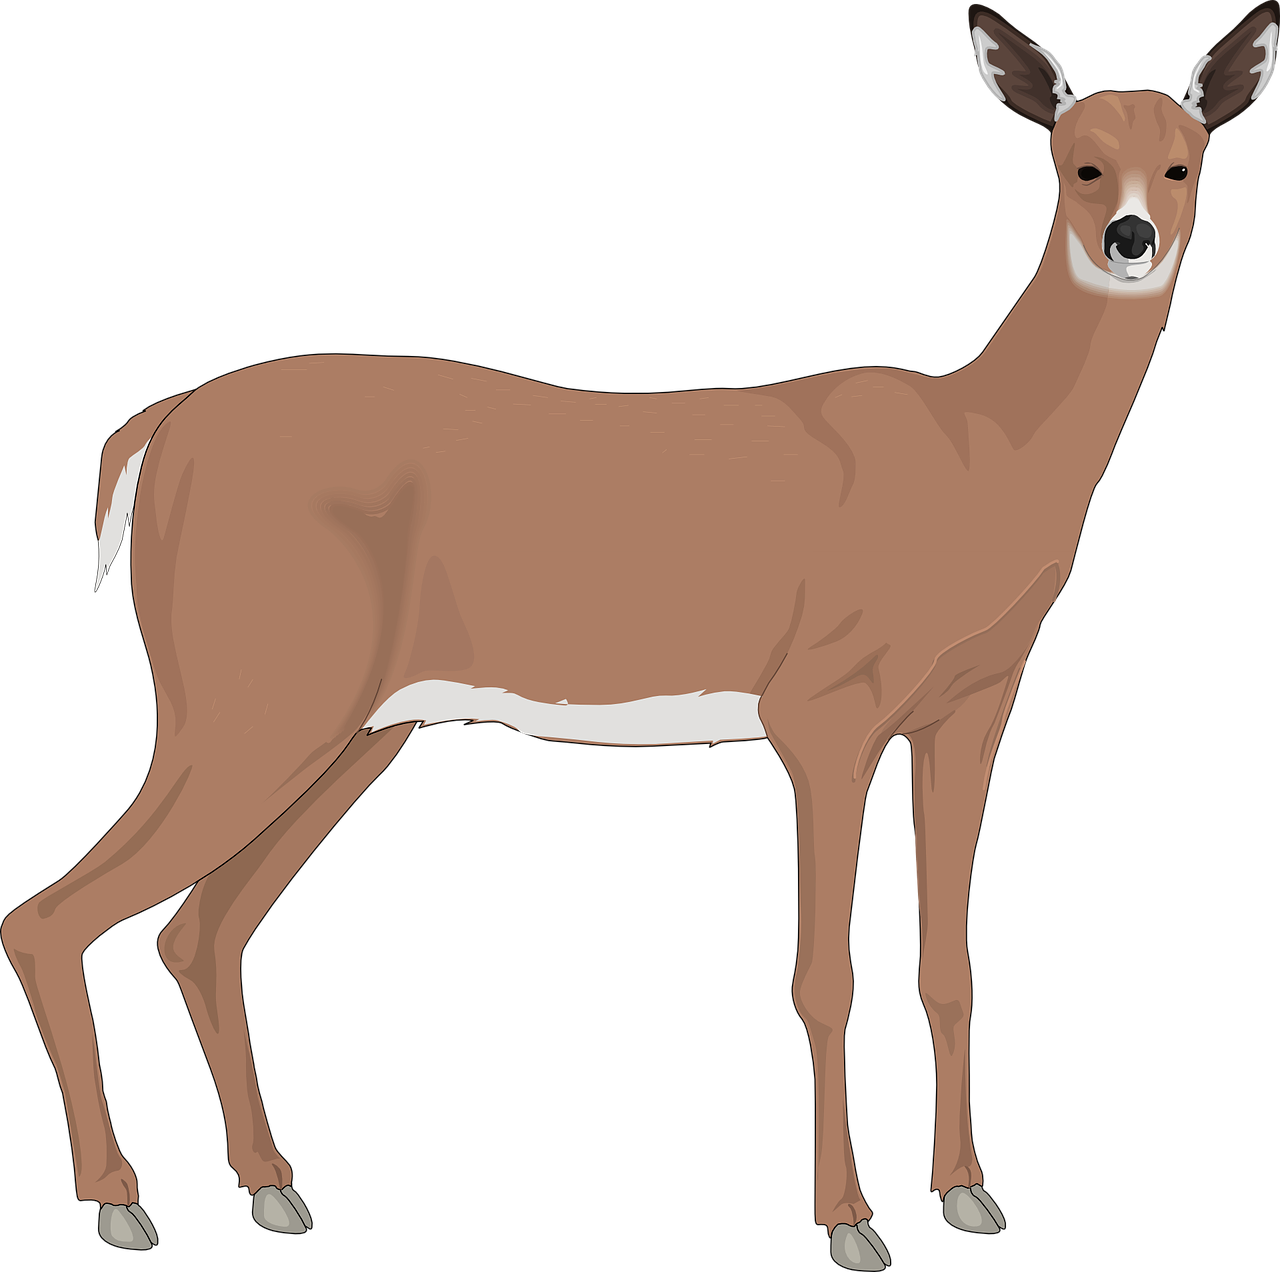 deer,animal,mammal,wild,nature,wildlife,collection,doe,stag,beast,female,meadow,herd,environment,natural,prairie,free vector graphics,free pictures, free photos, free images, royalty free, free illustrations, public domain